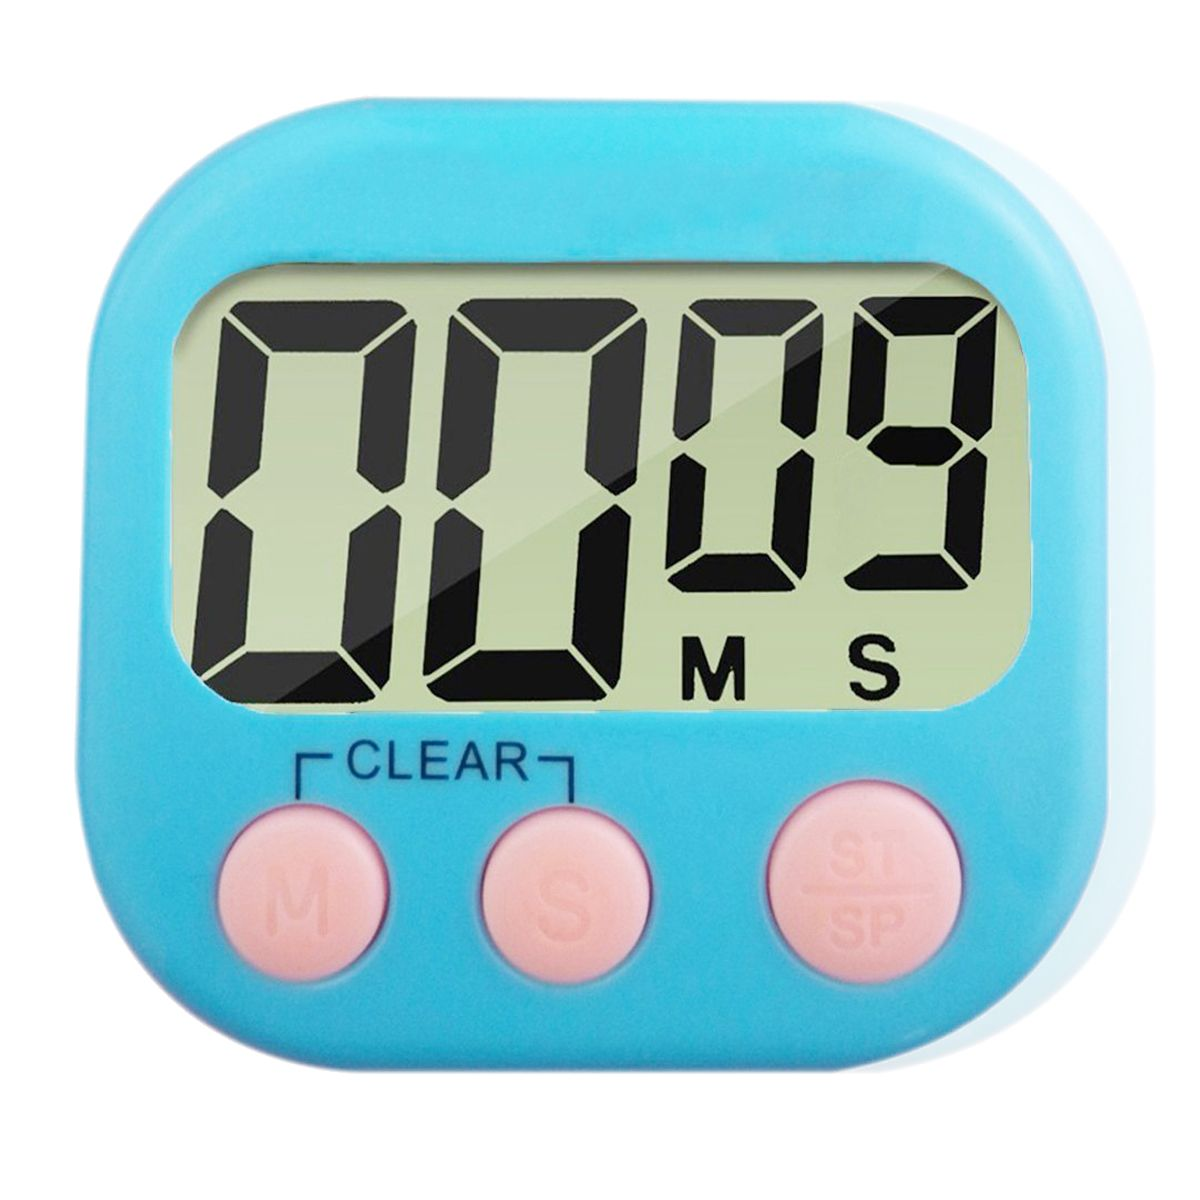 SDFC-Large LCD Digital Kitchen Egg Cooking Timer Count Down Clock Alarm Stopwatch(blue) ...